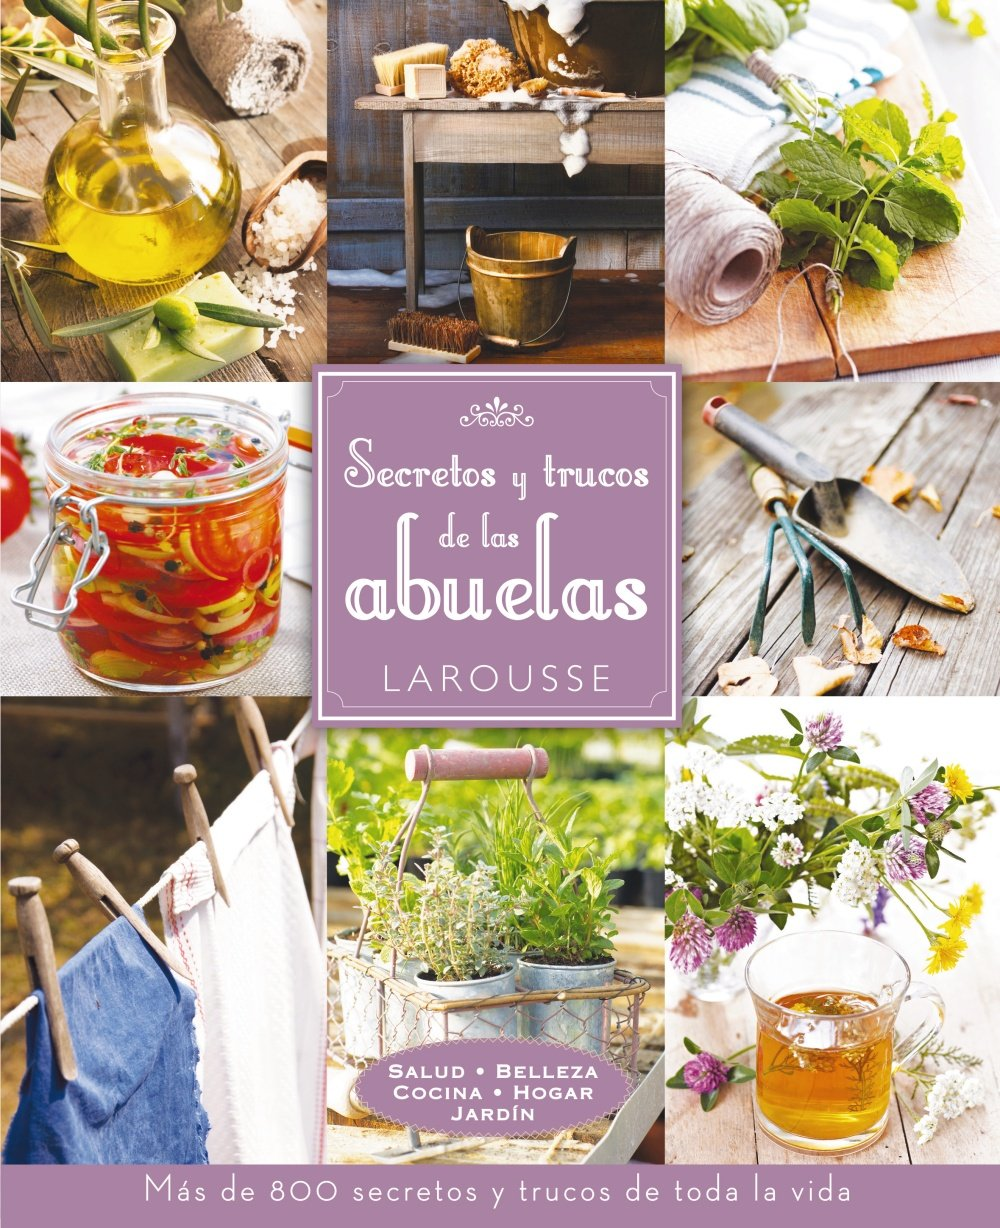 Secretos y trucos de las abuelas (Spanish Edition): Emile Zola, Imma Estany Morros: 9788416124091: Amazon.com: Books